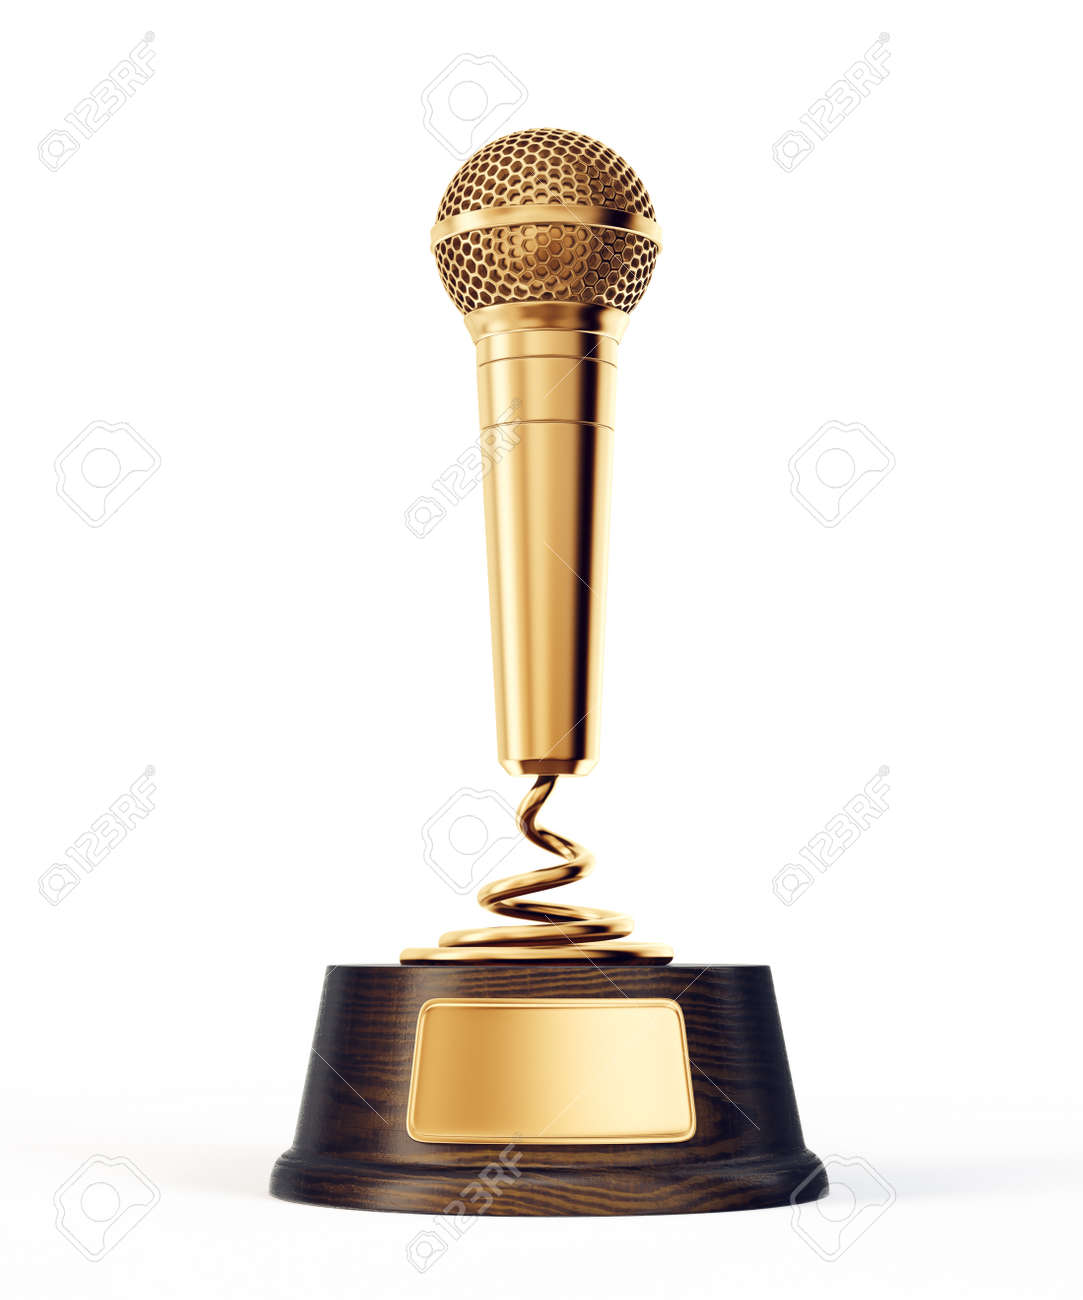 golden microphone award isolated on a white. 3d illustration - 104174122